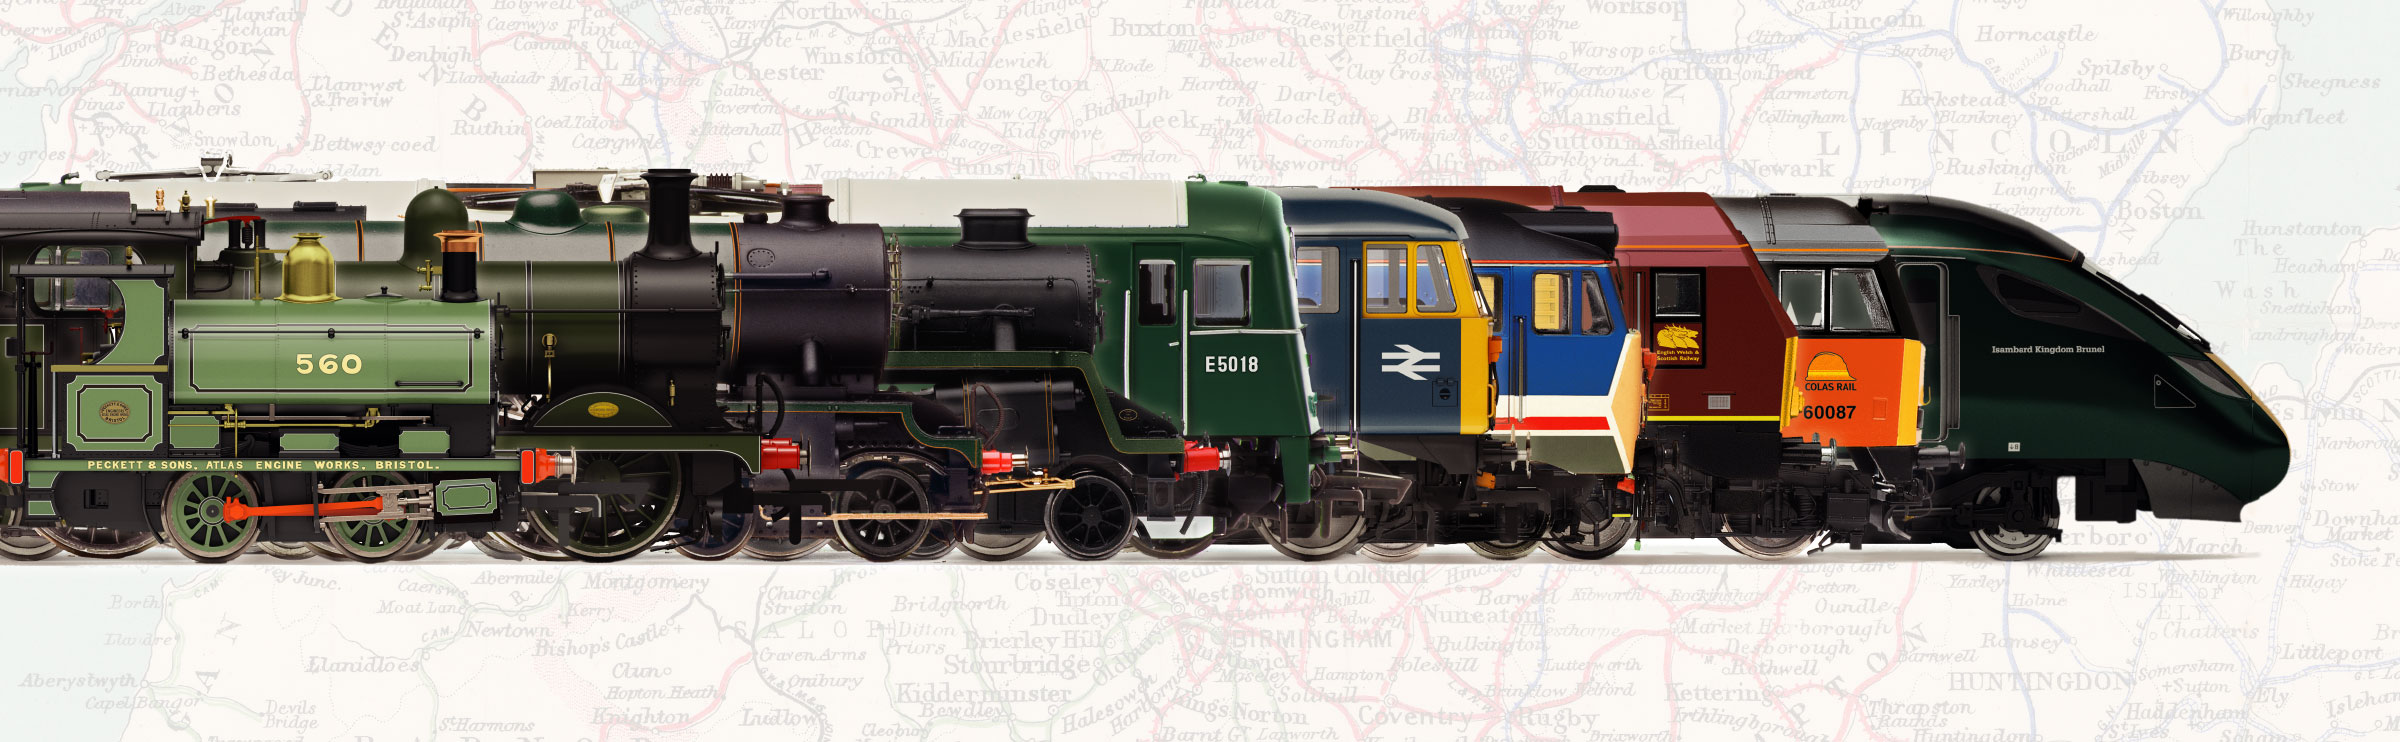 The Hornby Model Railway Era system